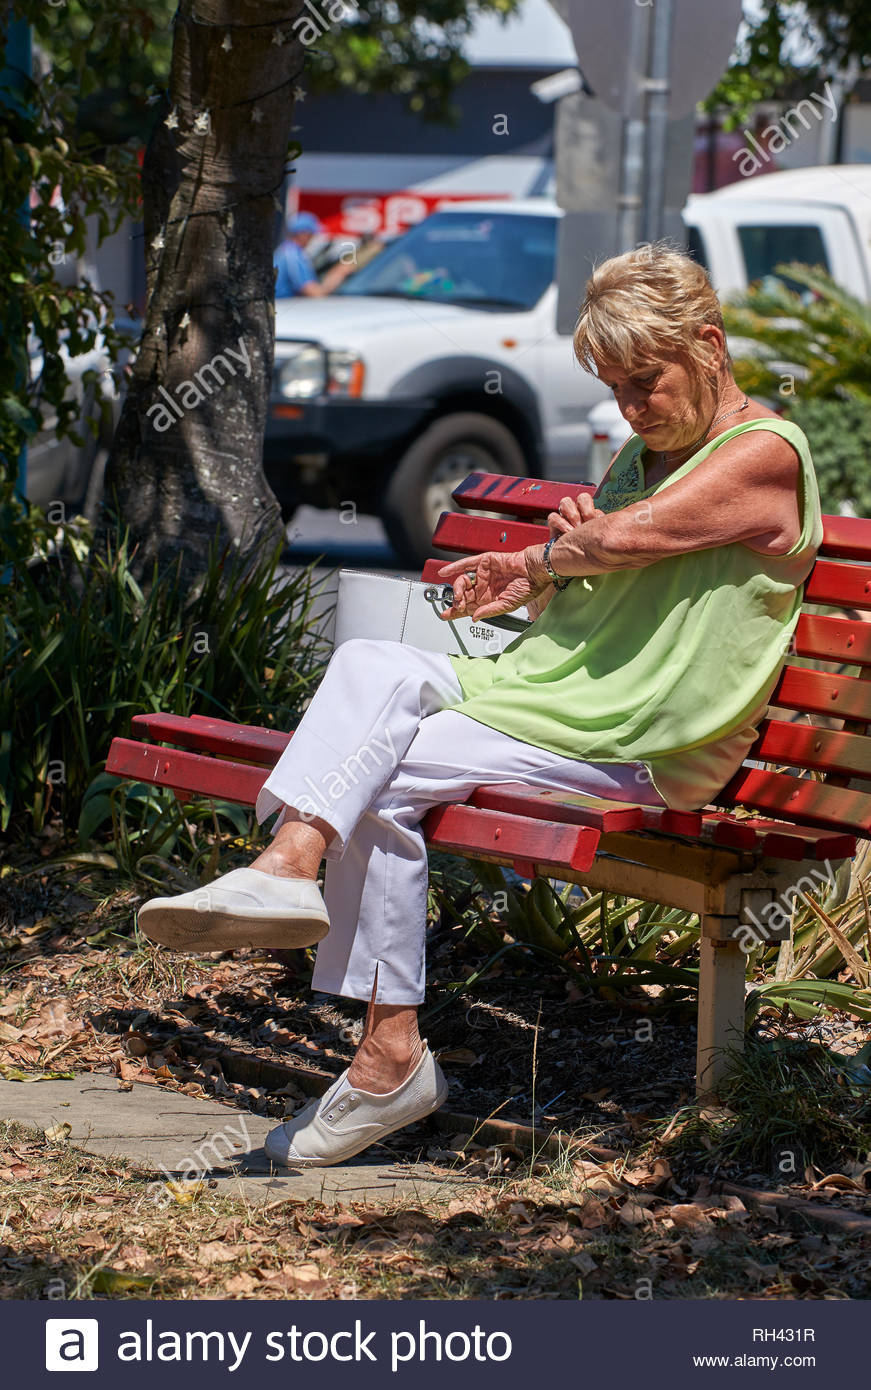 An older woman sitting on a red bench-seat, picking at her forearm in the sun and wearing pale green and white clothes and shoes; in Yamba, Australia. Stock Photo